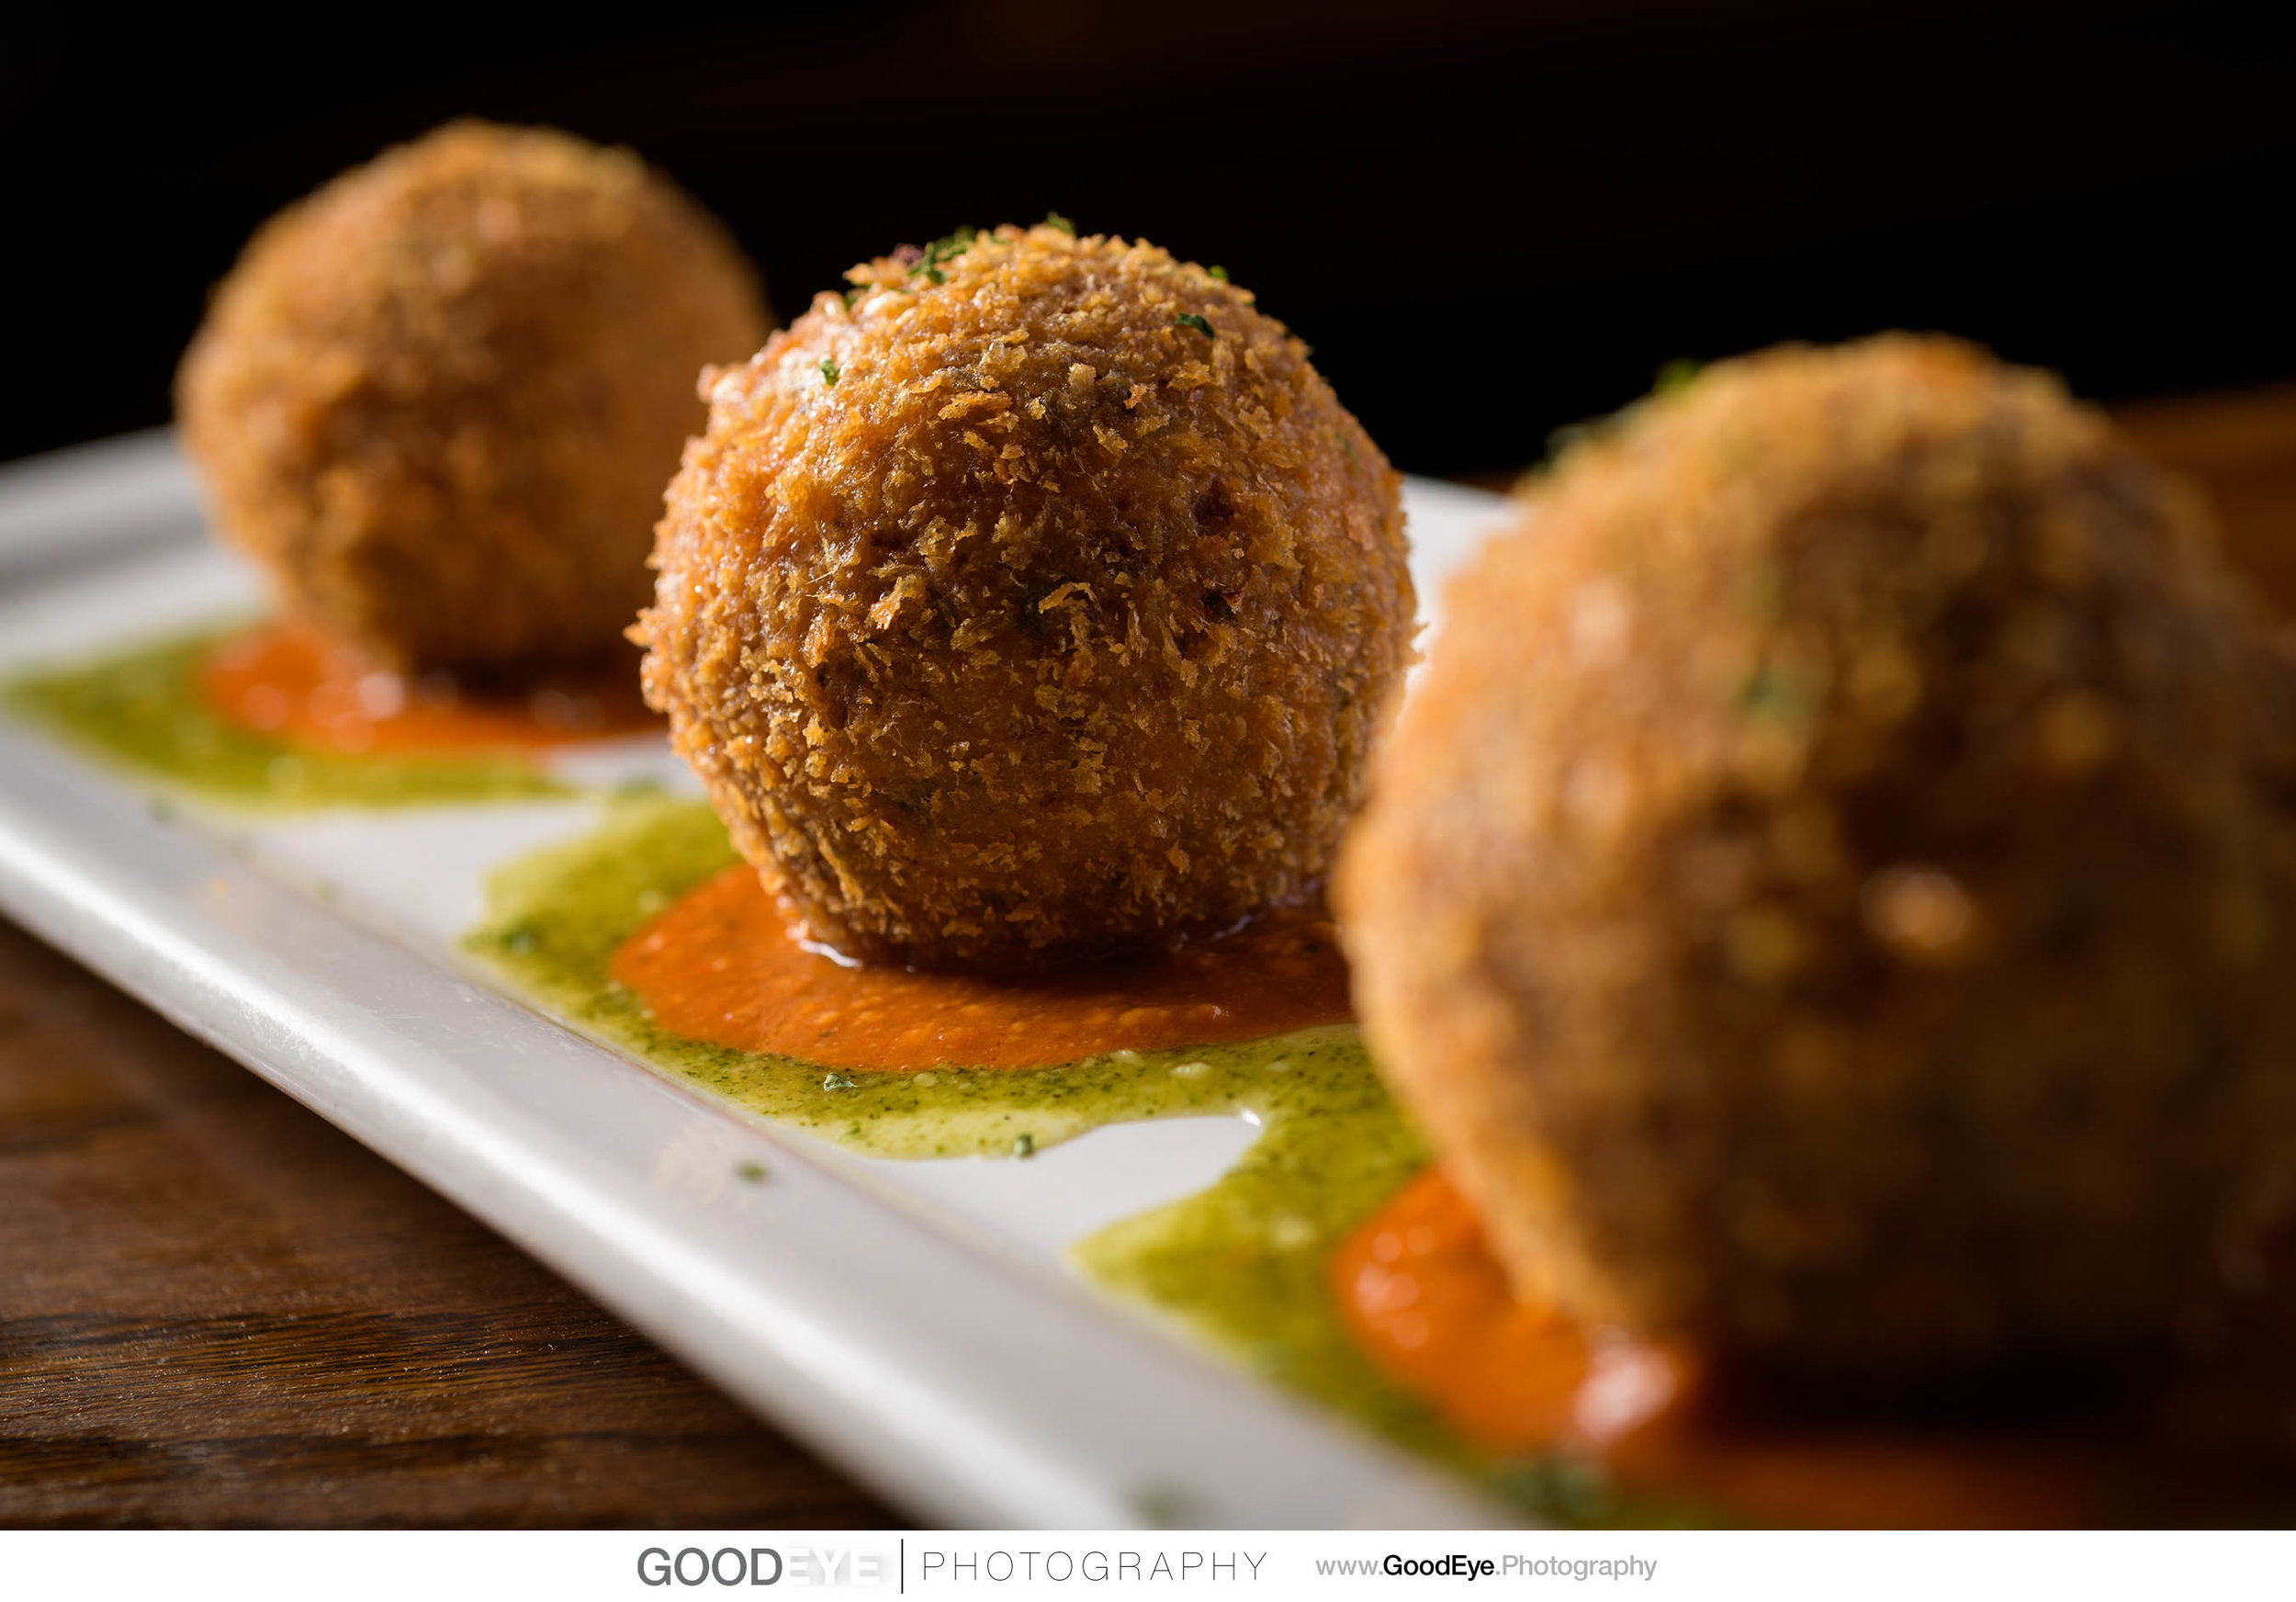 Cupertino Restaurant Food Photography - by Bay Area commercial p